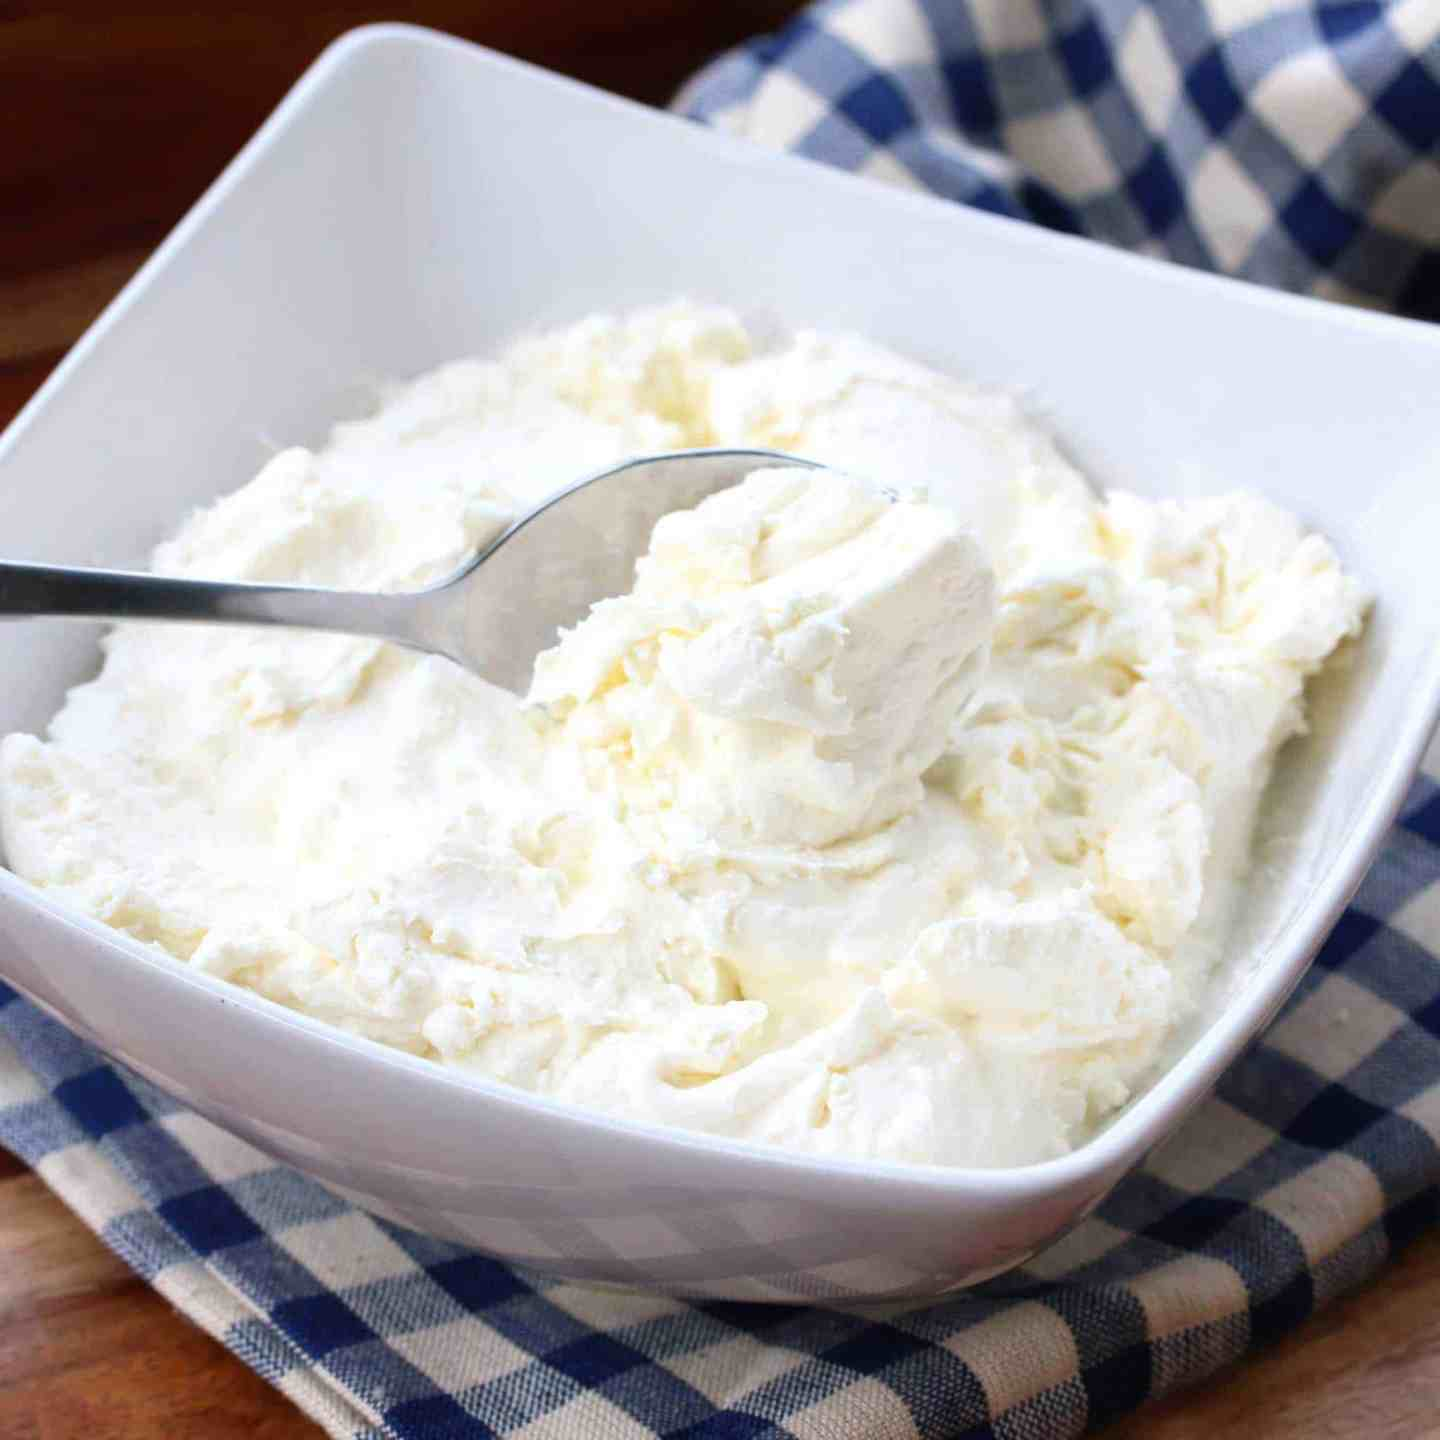 Mascarpone ingredient